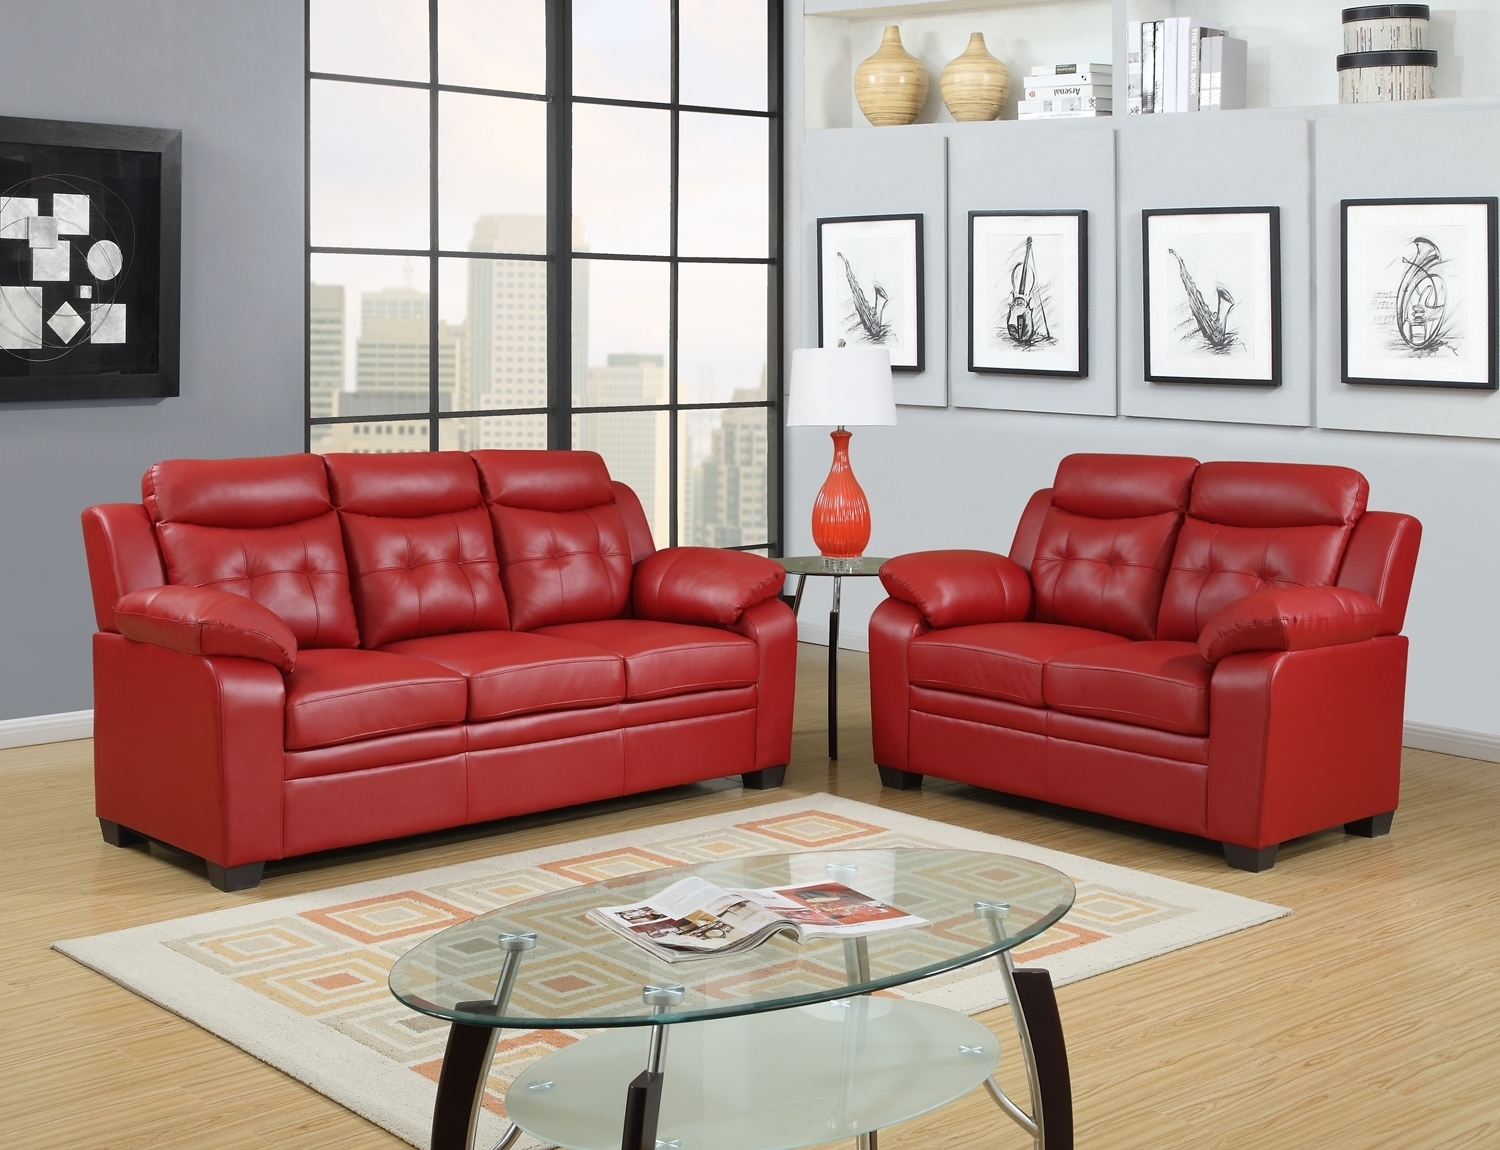 Red Leather Couches And Loveseats Pertaining To Latest Remarkable Red Leather Sofas And Loveseats Pics Ideas – Surripui (View 10 of 15)